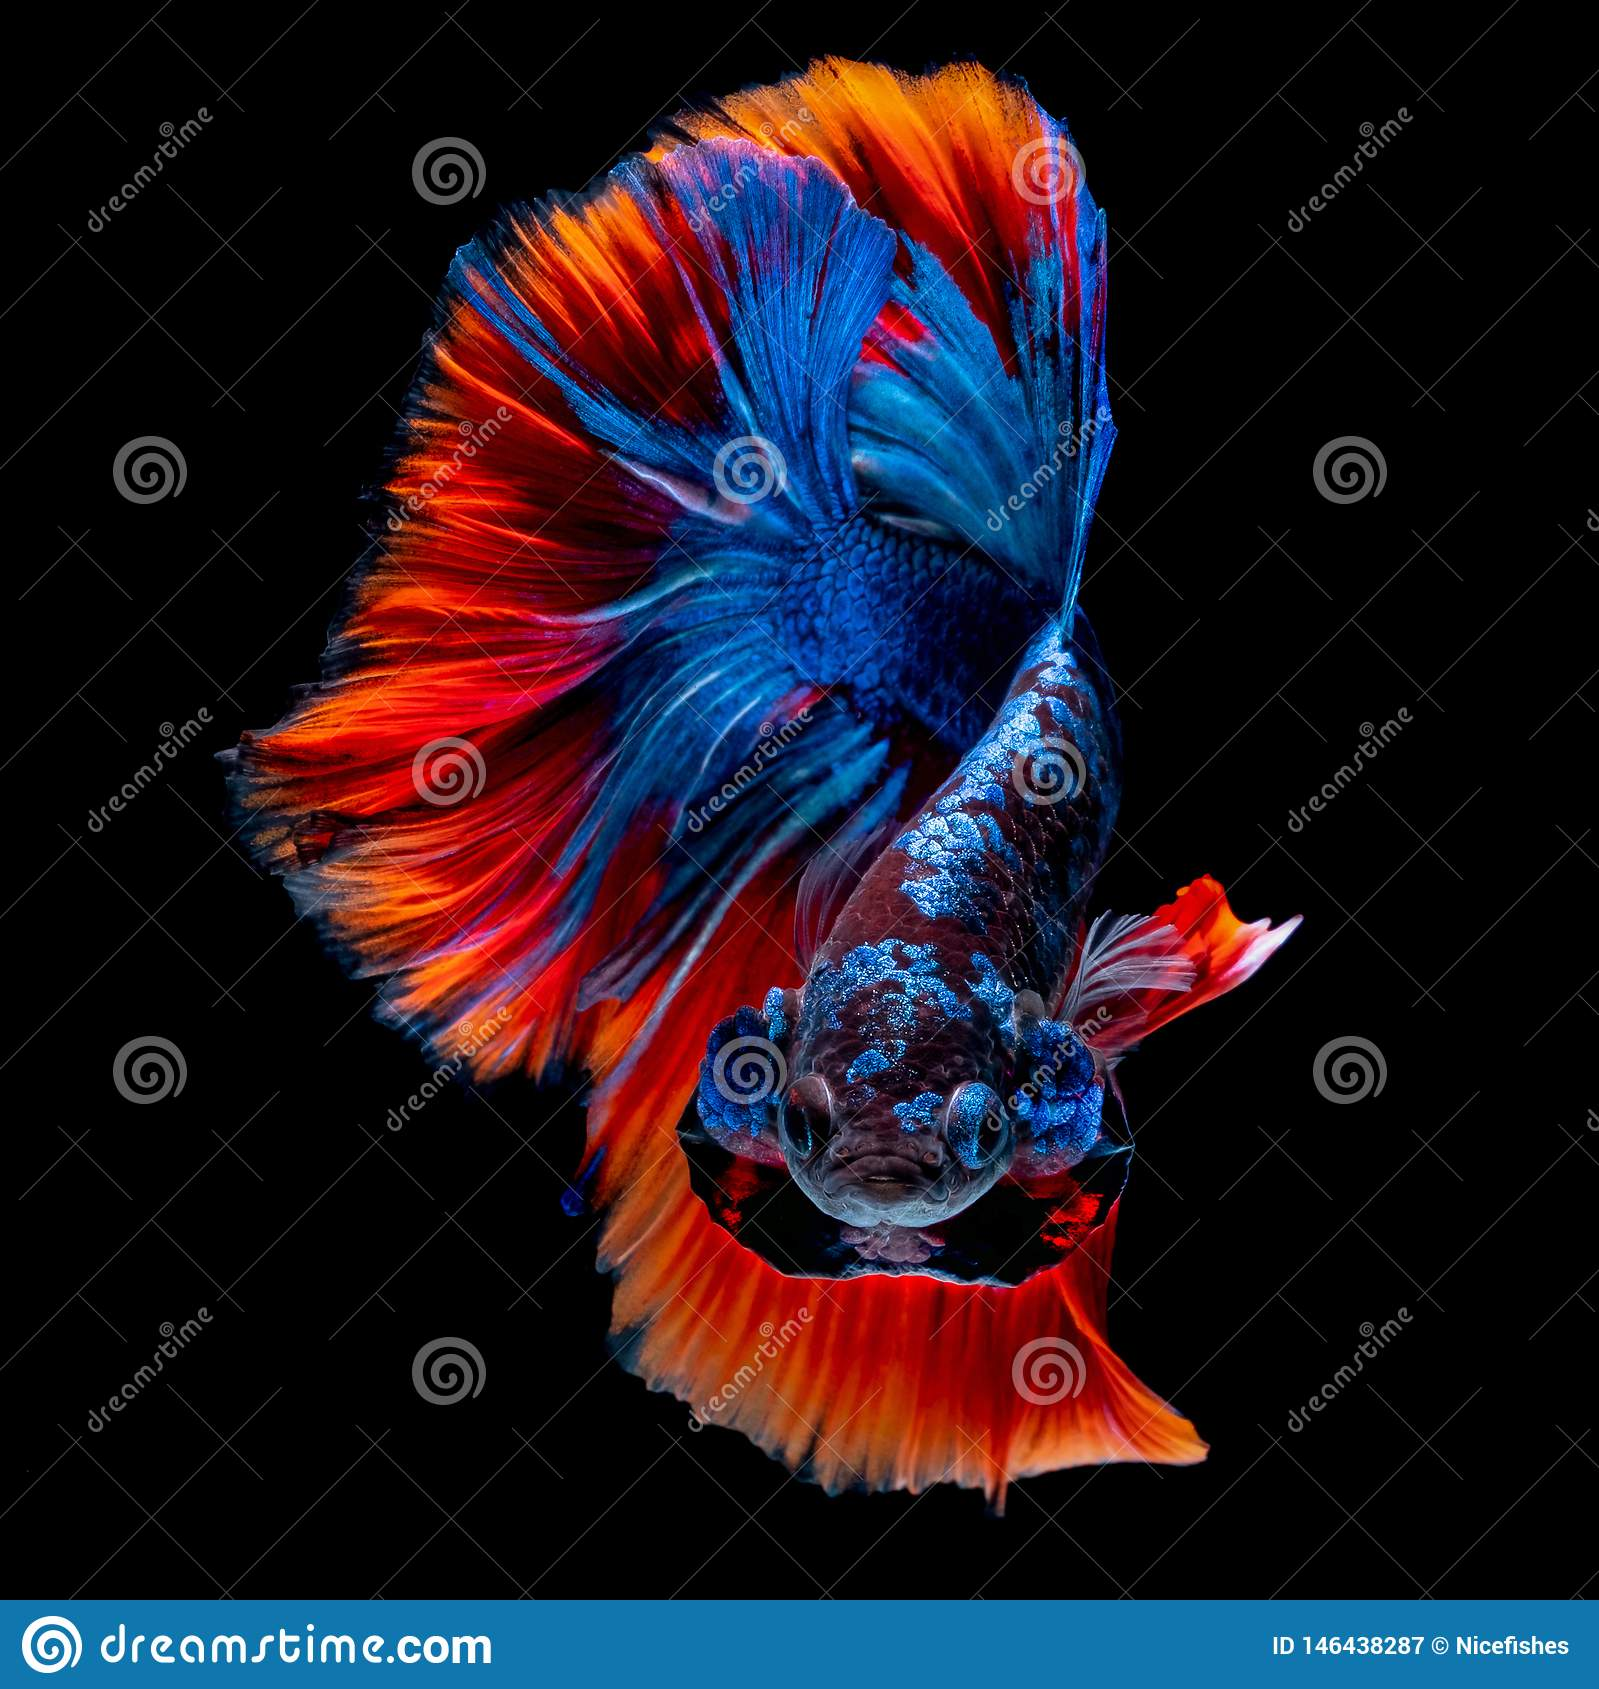 Betta fish koi fish kohaku Red White